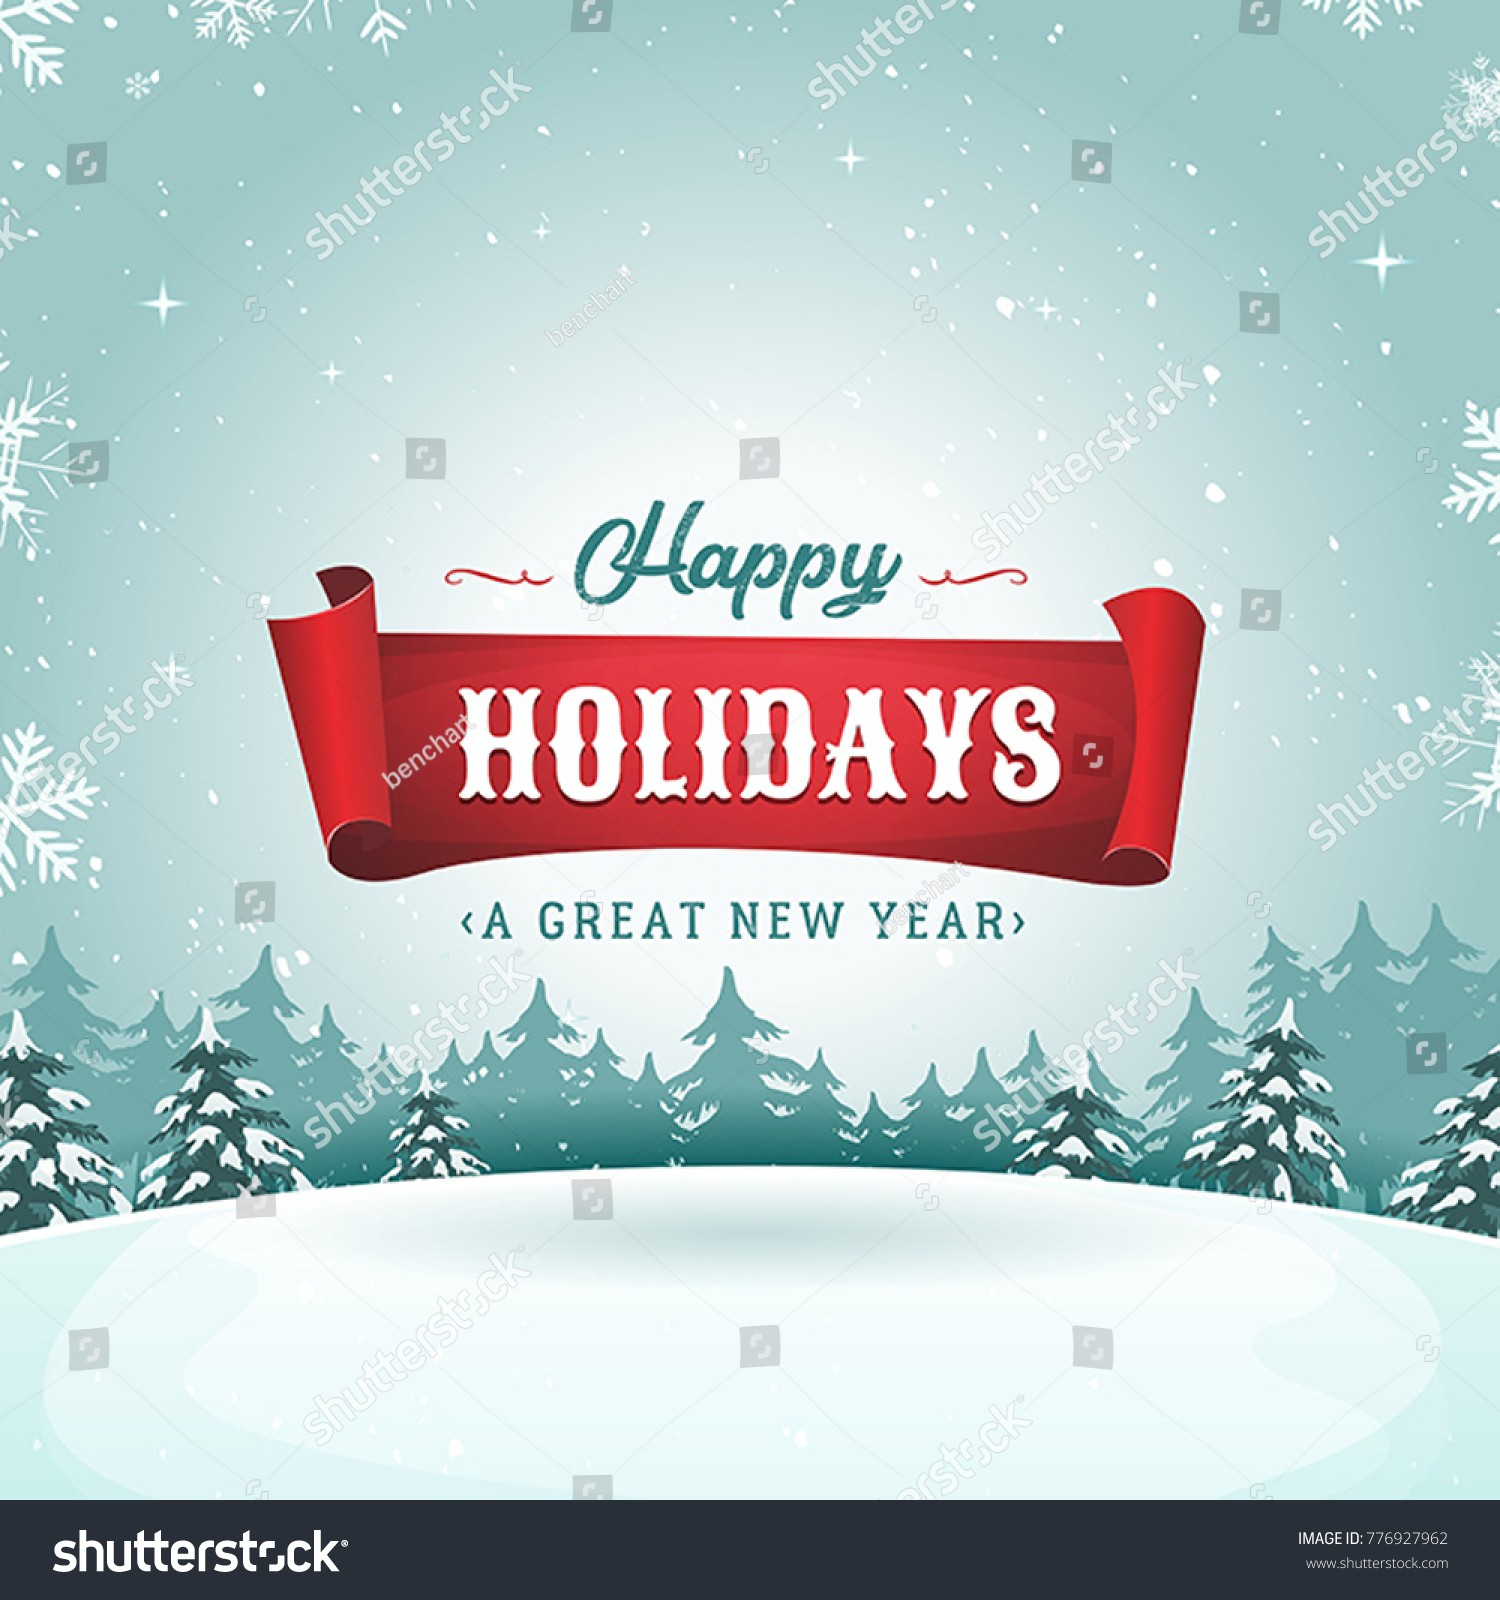 Happy Holidays Greeting Card Christmas Landscape Stock Vector